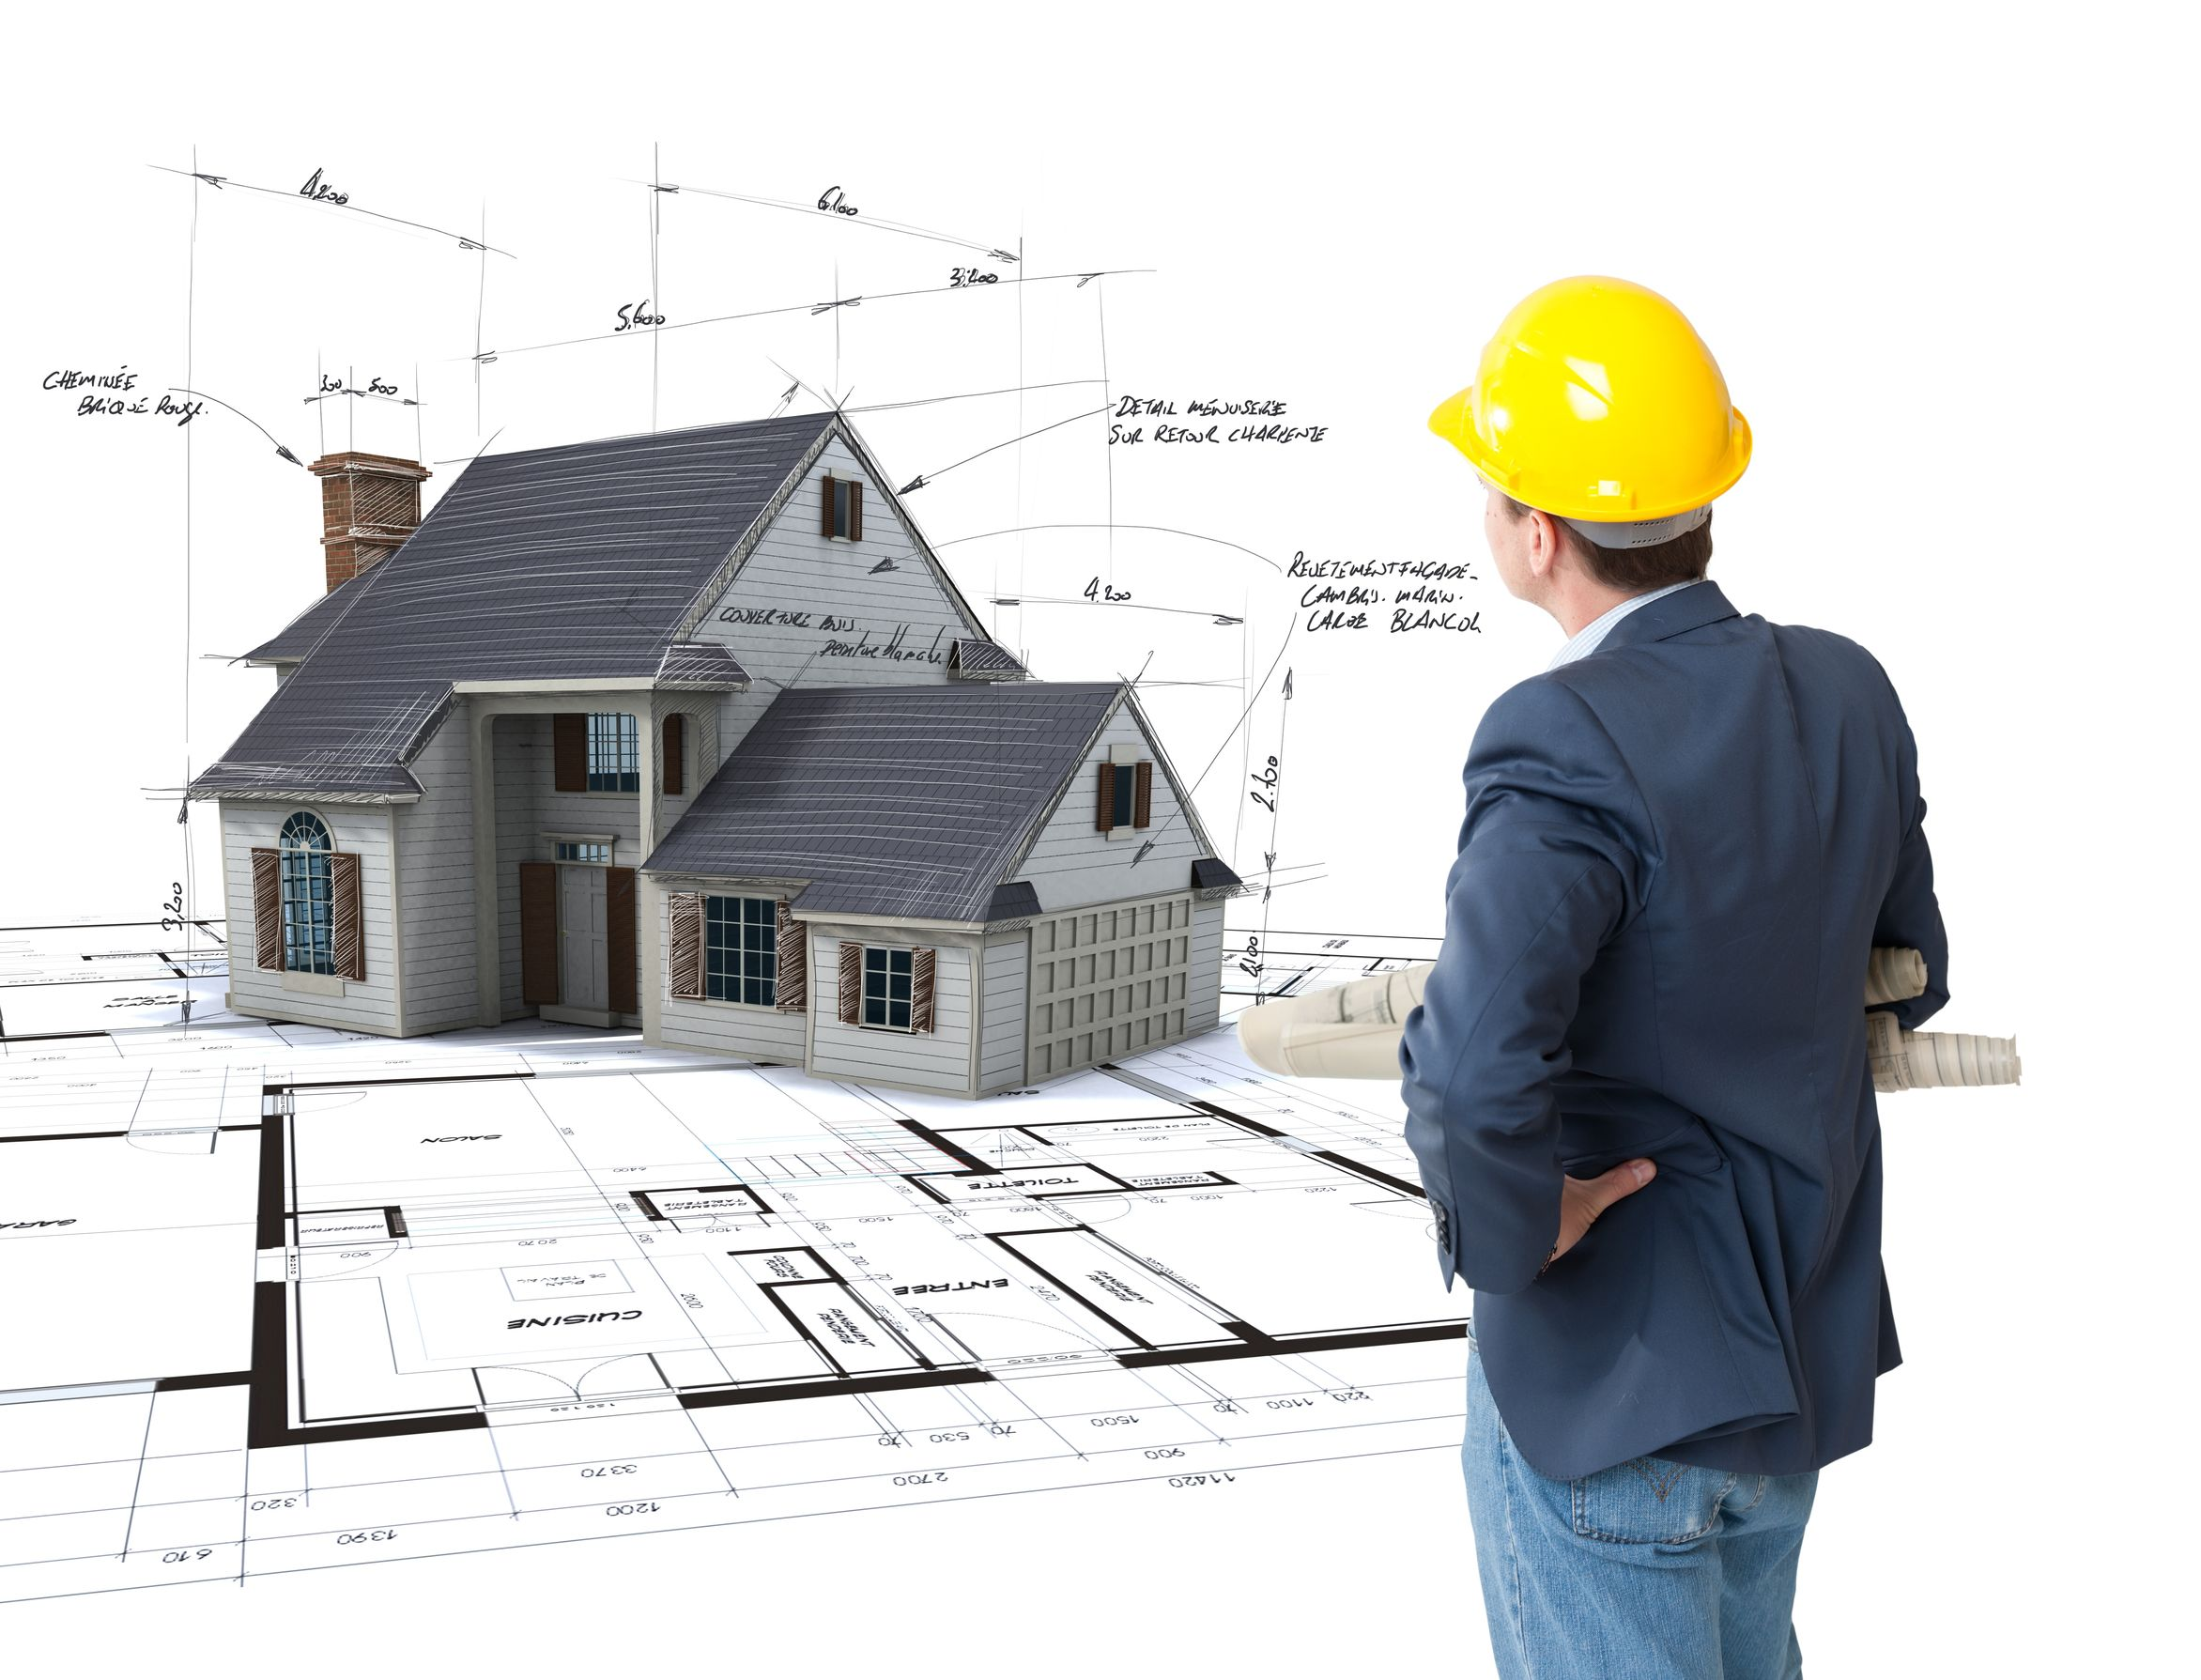 Housing Appeals Board Seeks Engineer or Surveyor